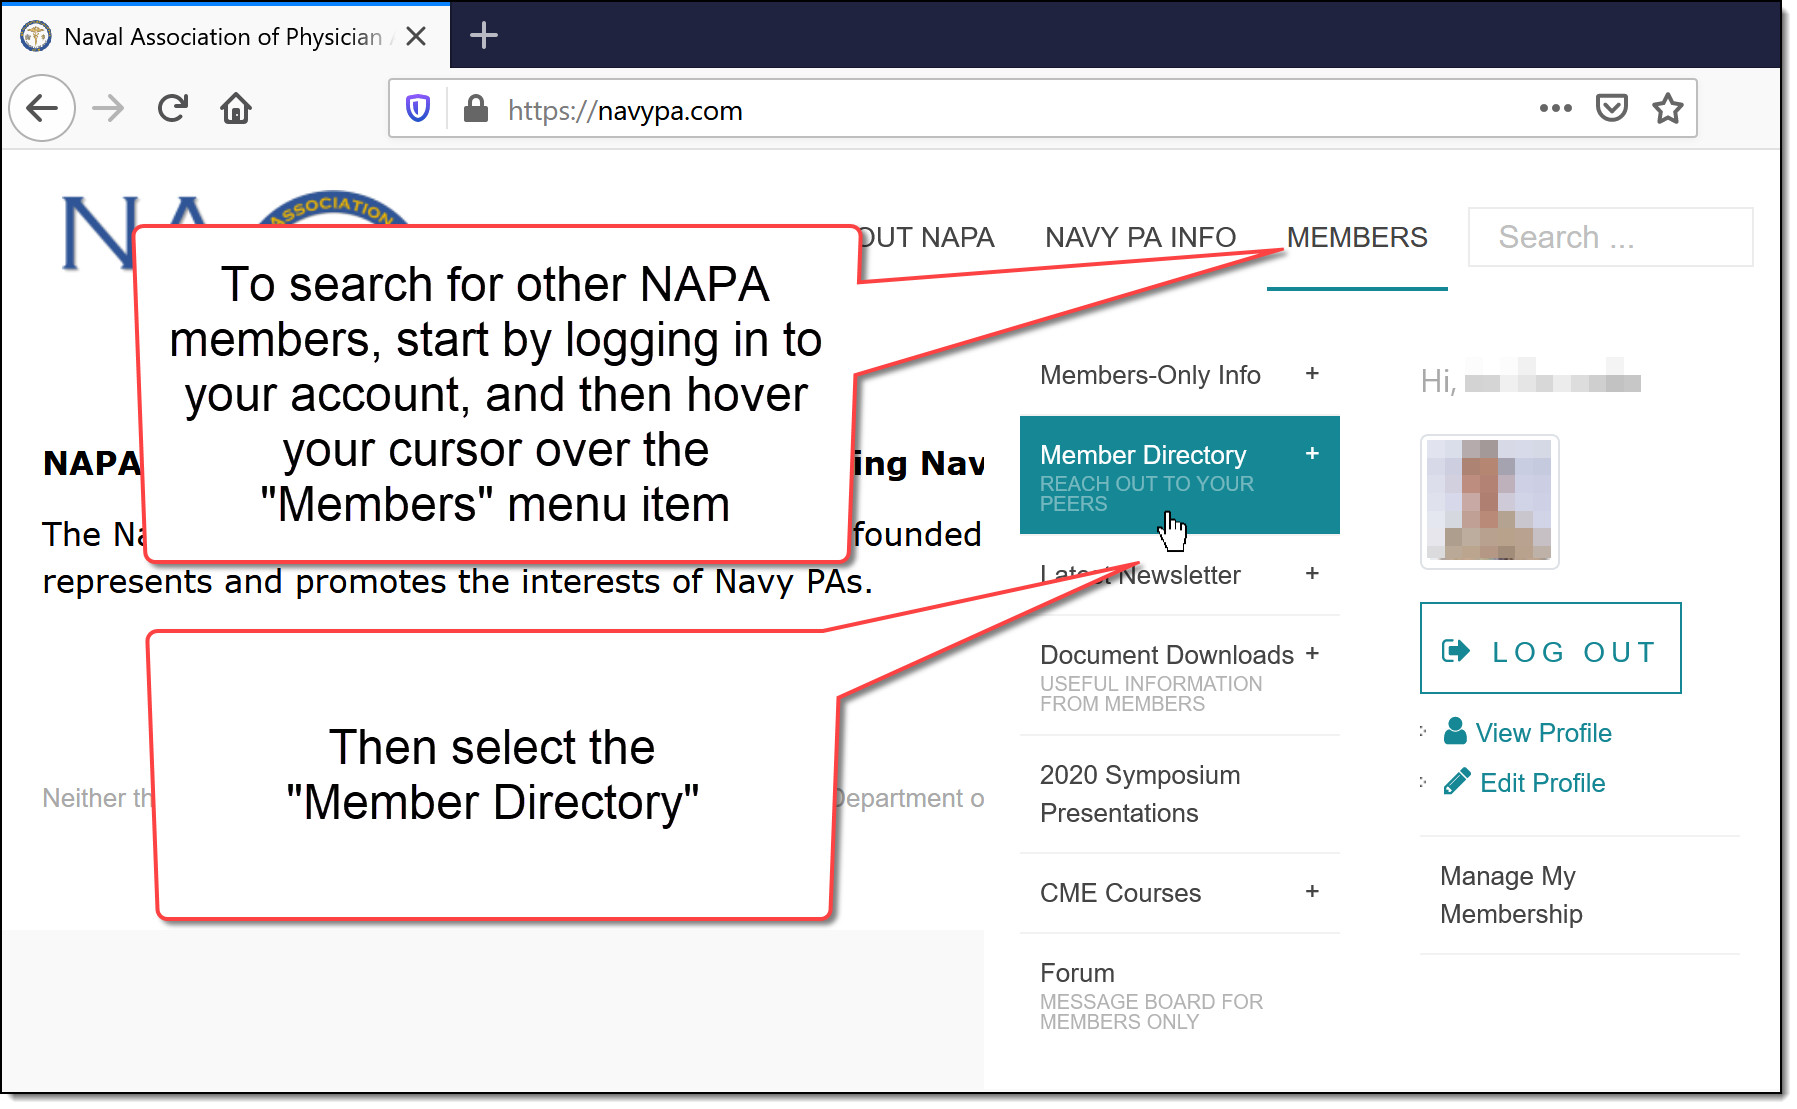 How to search for other NAPA members